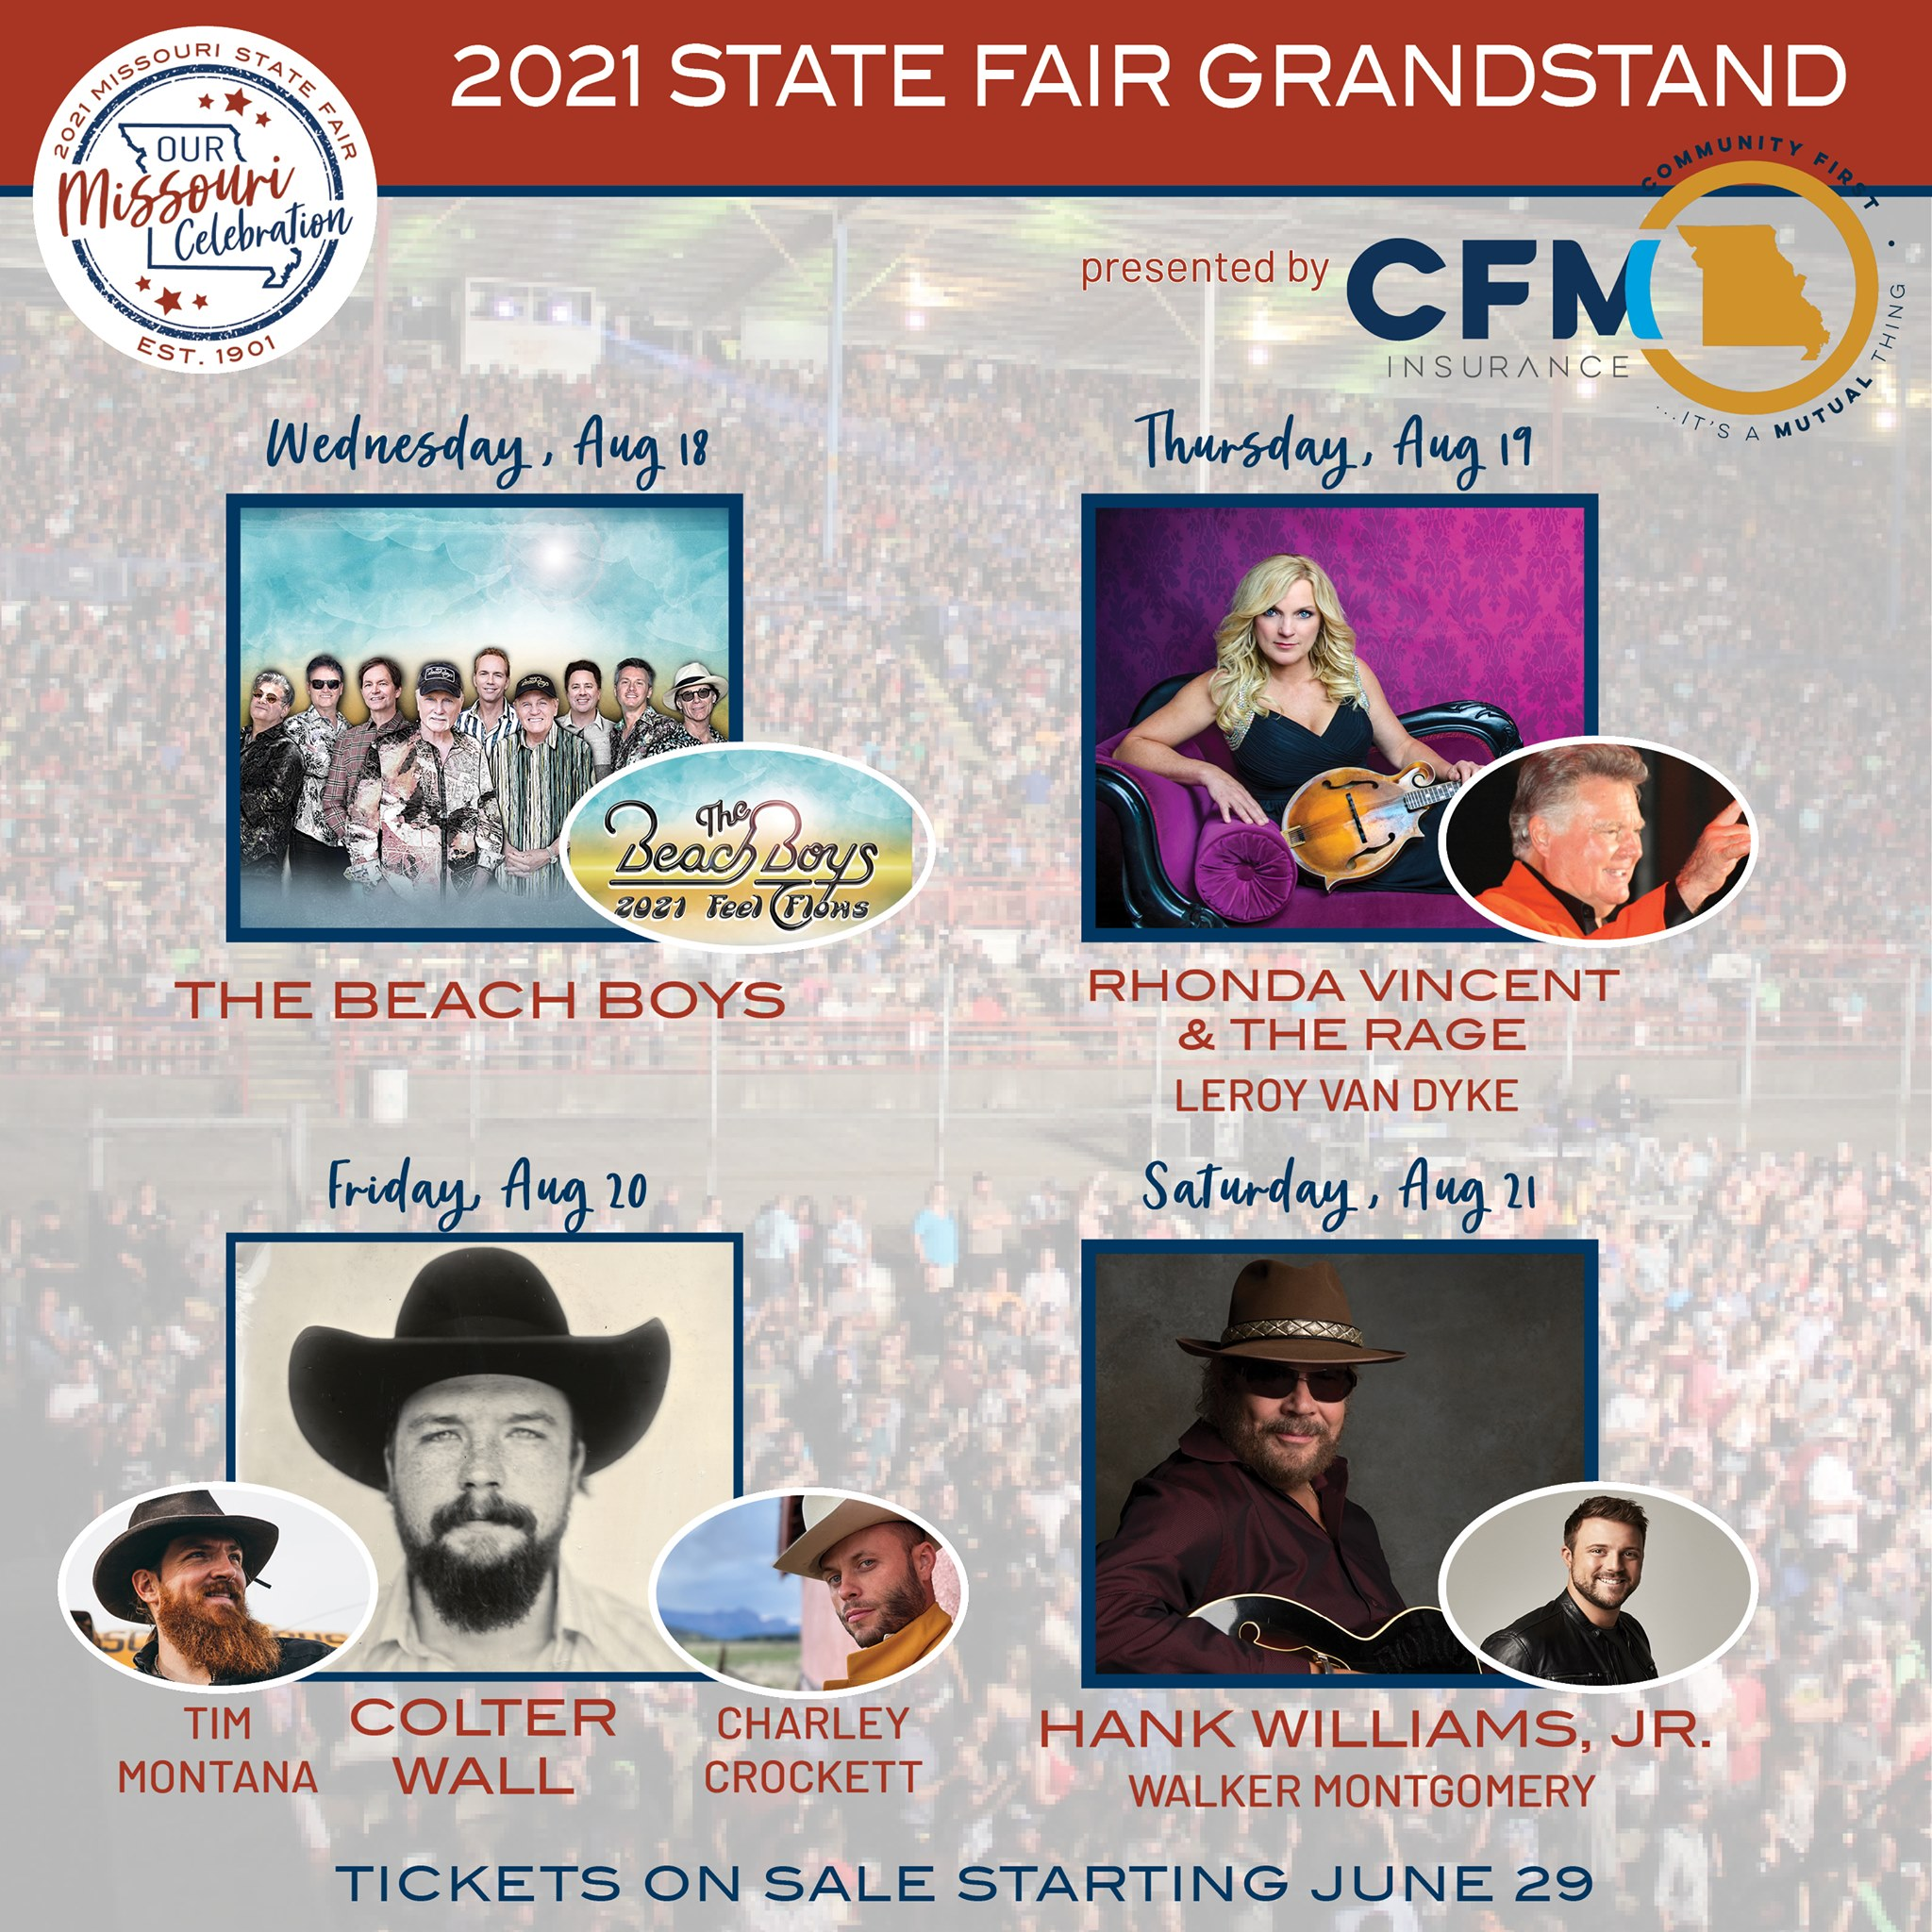 MSF announces final four concerts, Hank Jr., Colter Wall to headline